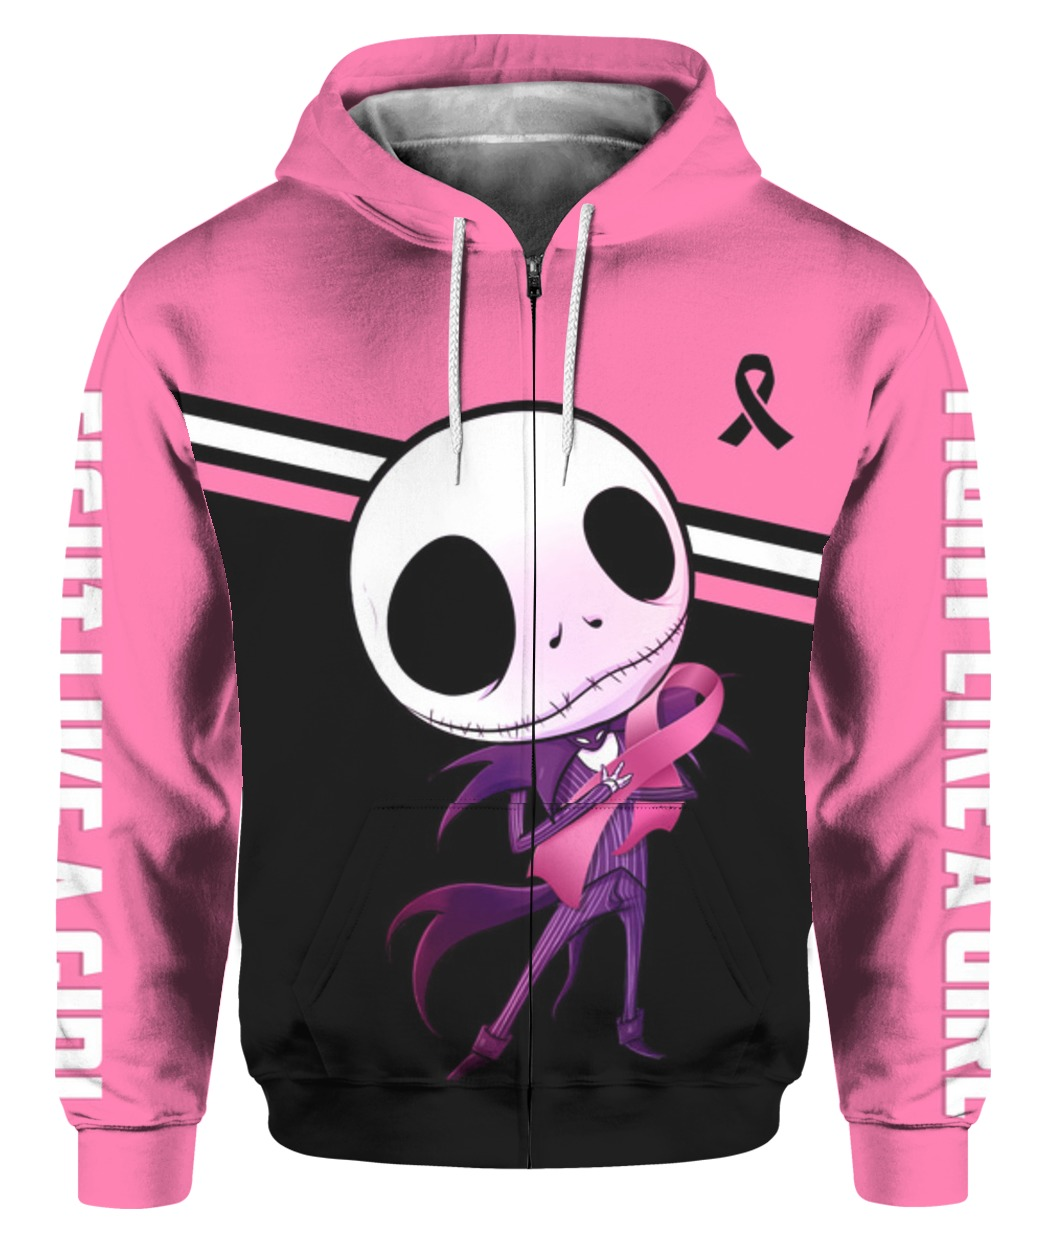 Baby jack skellington hugs ribbon breast cancer awareness all over printed zip hoodie